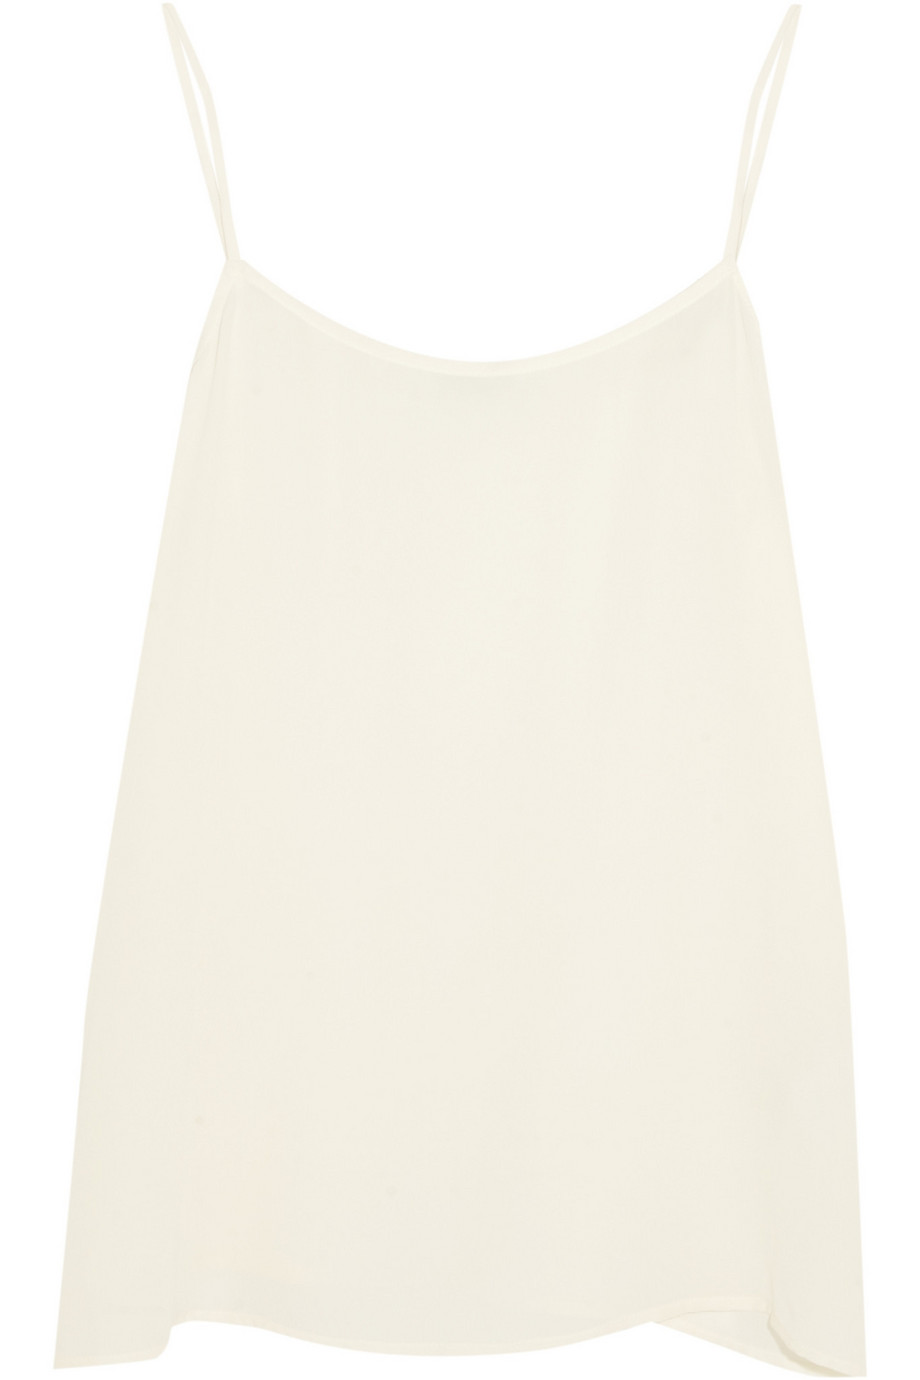 Equipment Cara Washed-Silk Camisole, White, Women's